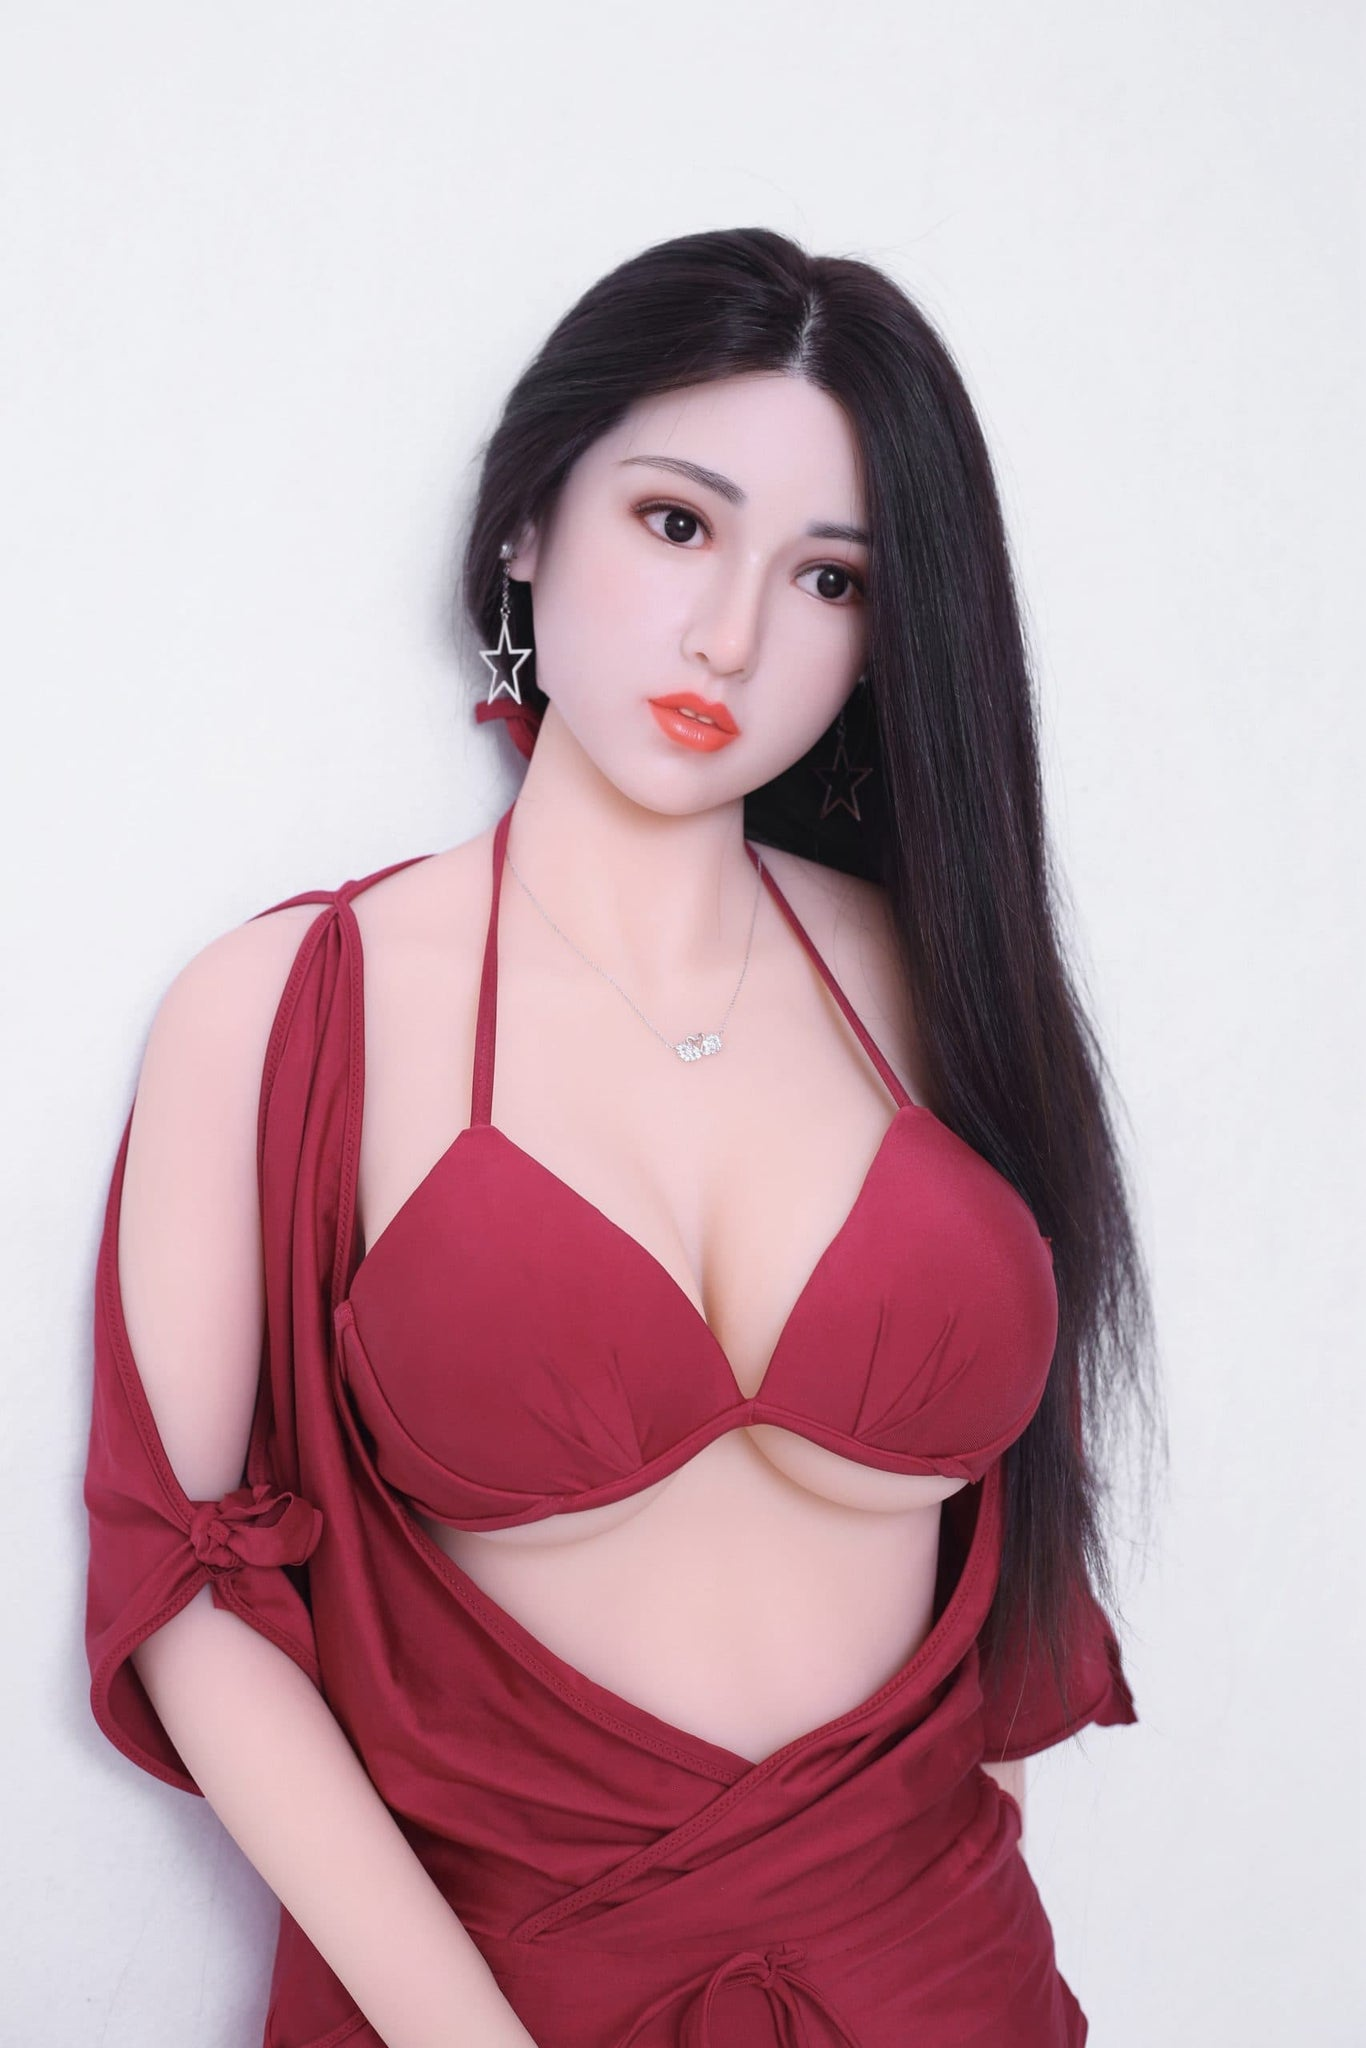 kiki 165cm af black hair big boobs athletic tpe sex doll(6)